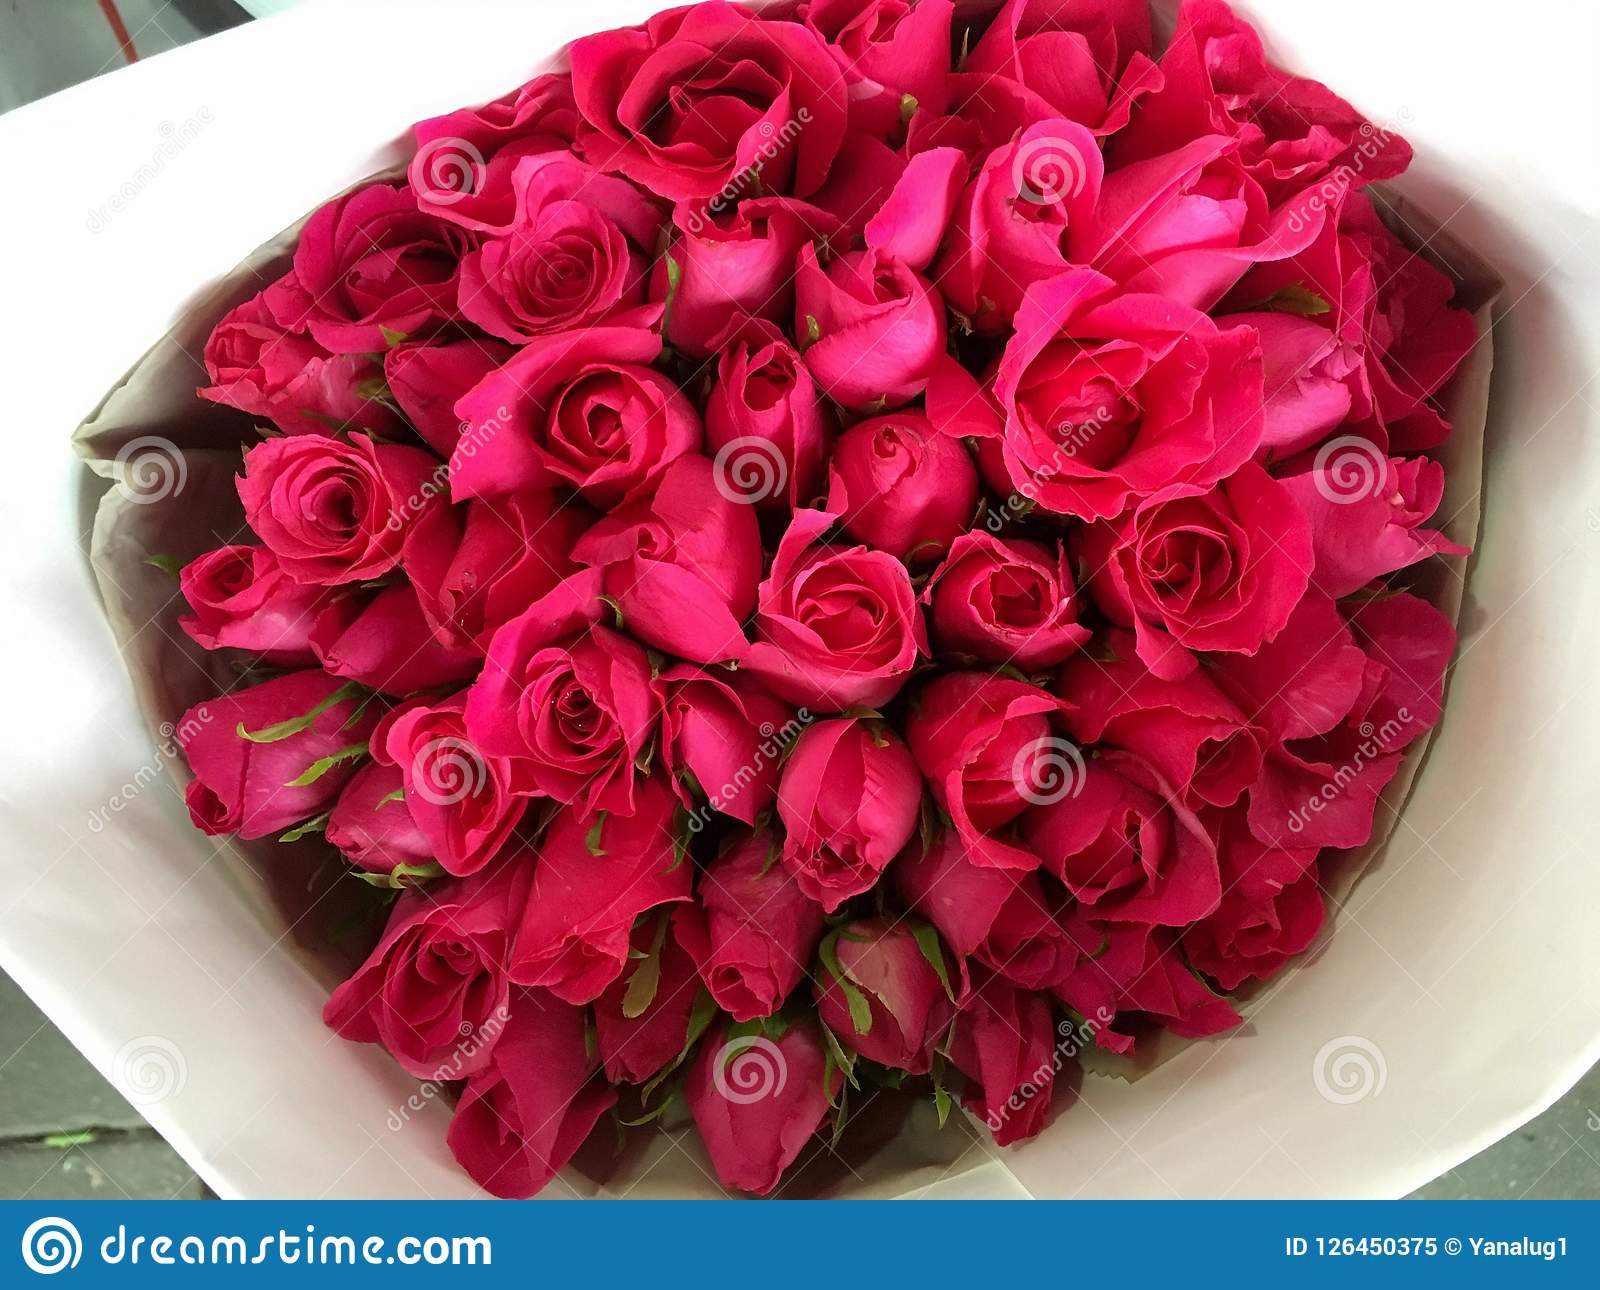 The bouquet of red roses beautiful flowers stock image image of download the bouquet of red roses beautiful flowers stock image image of roses izmirmasajfo